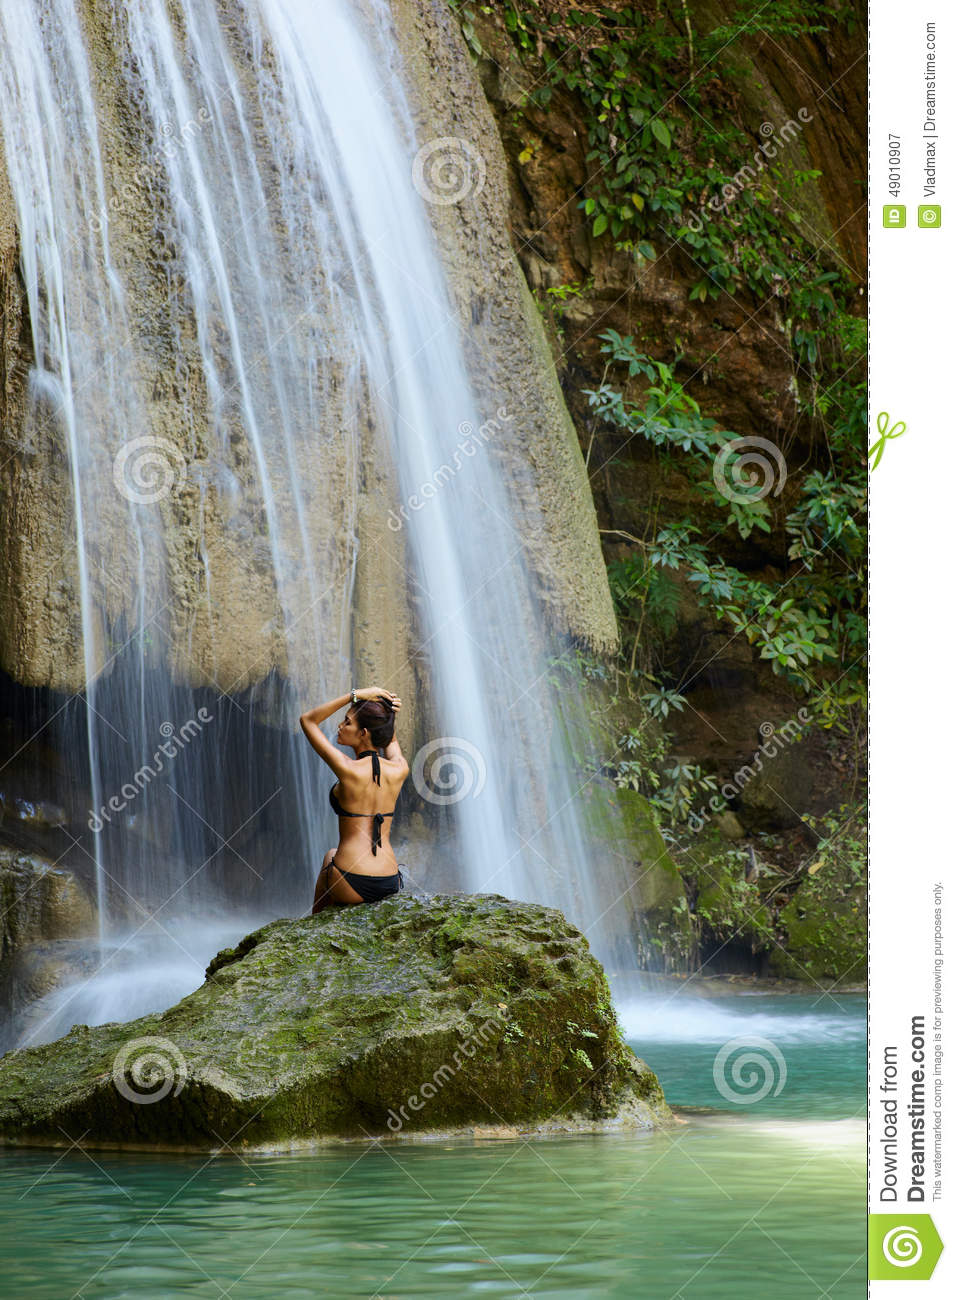 Natural Beauty, Young Woman In Nature Stock Photos - Image: 17185793